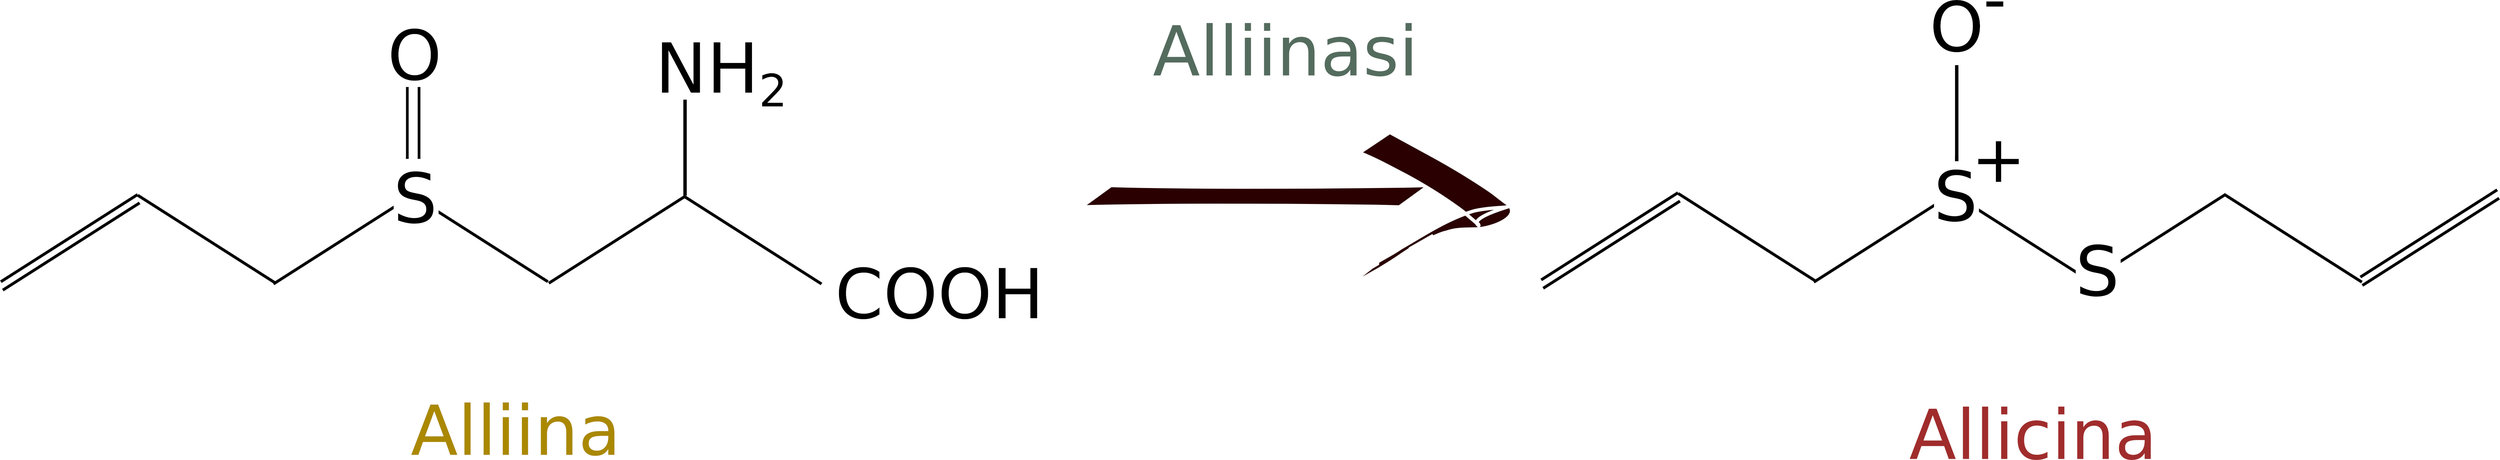 Conversione dell'alliina in allicina